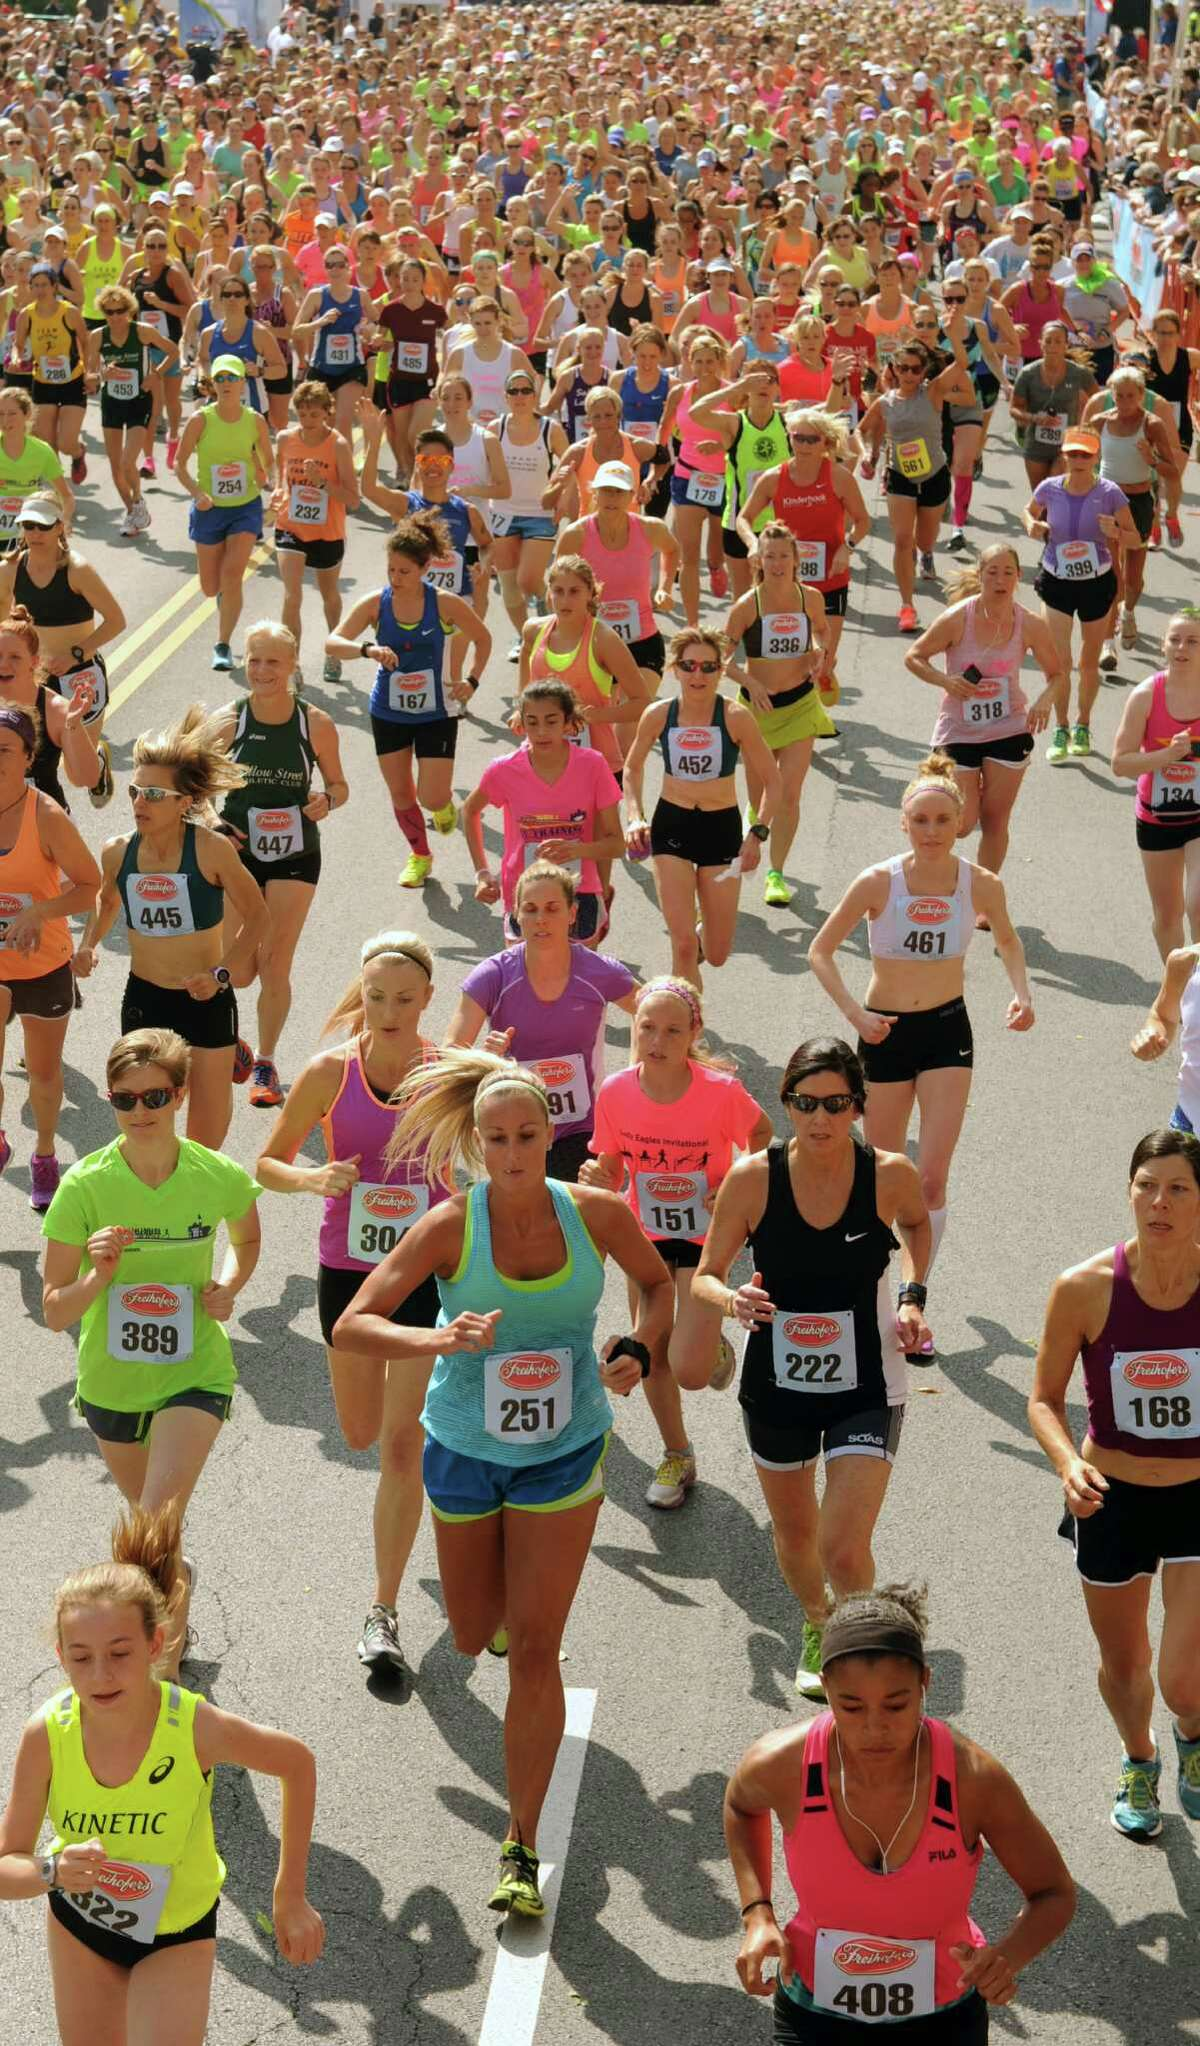 June 4: Freihofer's Run for Women. 5K road race draws thousands of runners to Empire State Plaza.